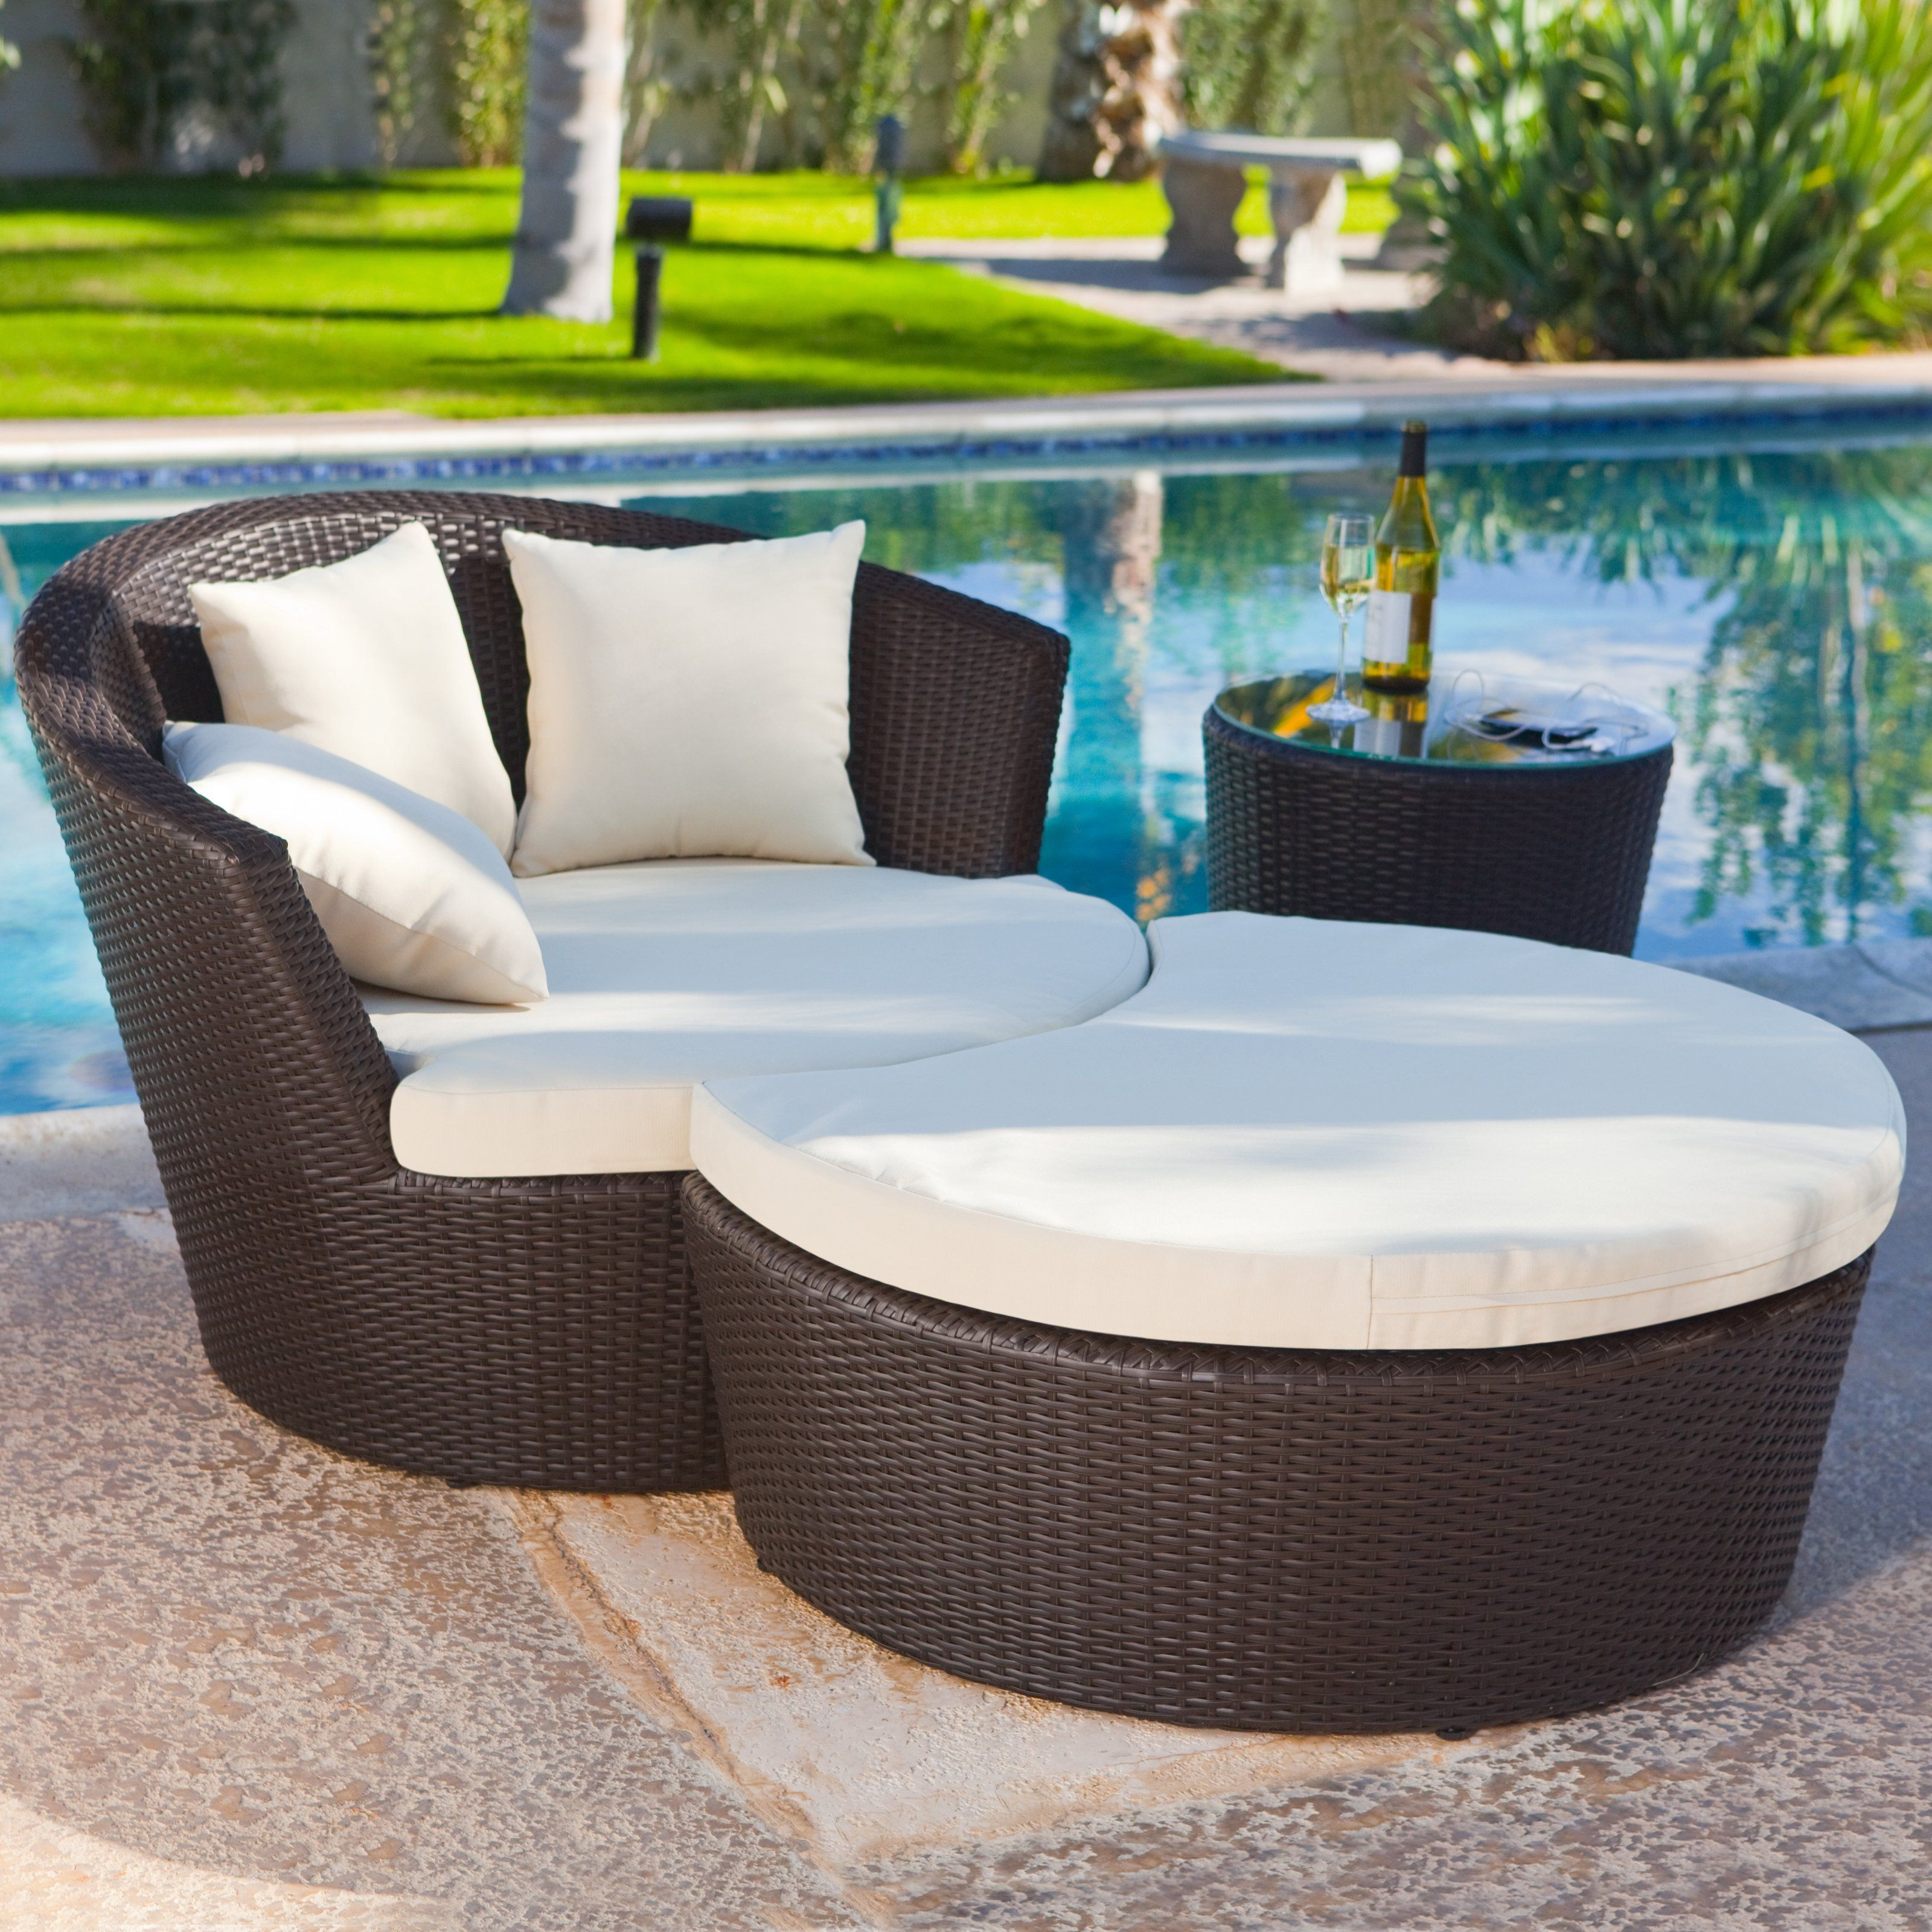 patio table round large rattan gray with dining leather warehouse set cane black reduced by garden adorable lounge chair full size furniture conservatory buy style cream chairs wicker french of and ikea awesome sale